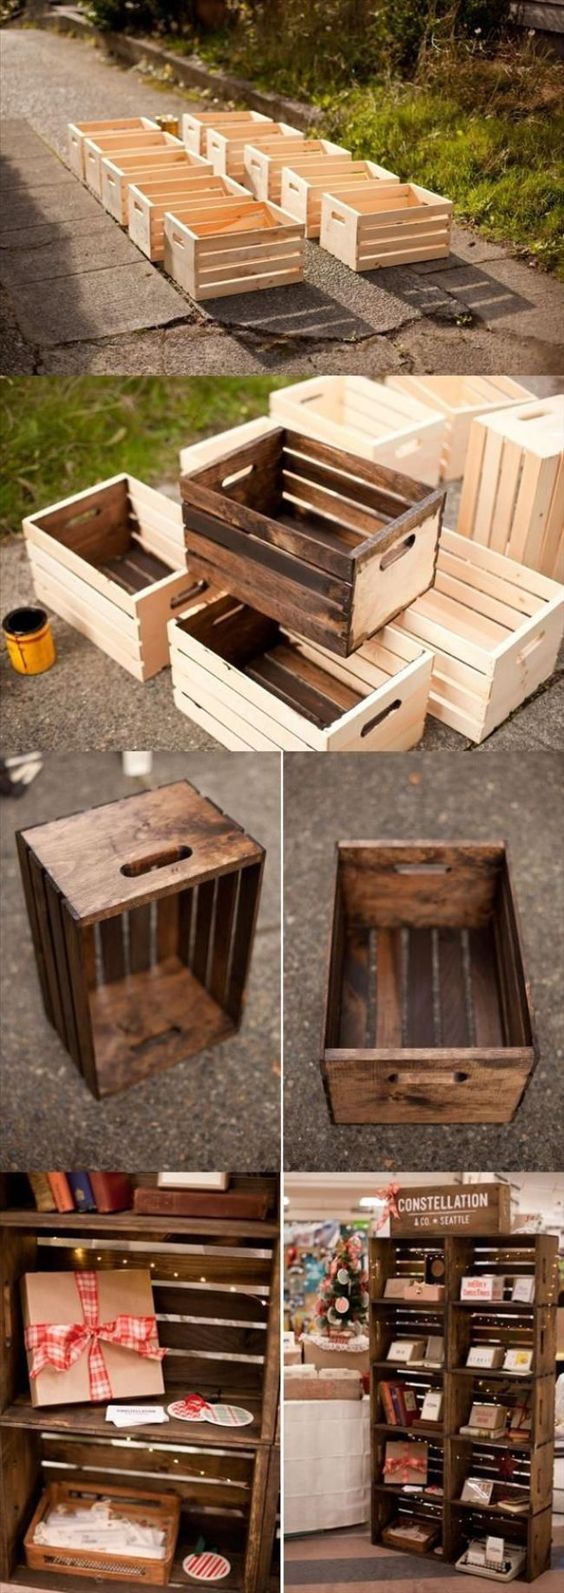 Best 25 wooden crates ideas on pinterest wooden shoe for Apple crate furniture